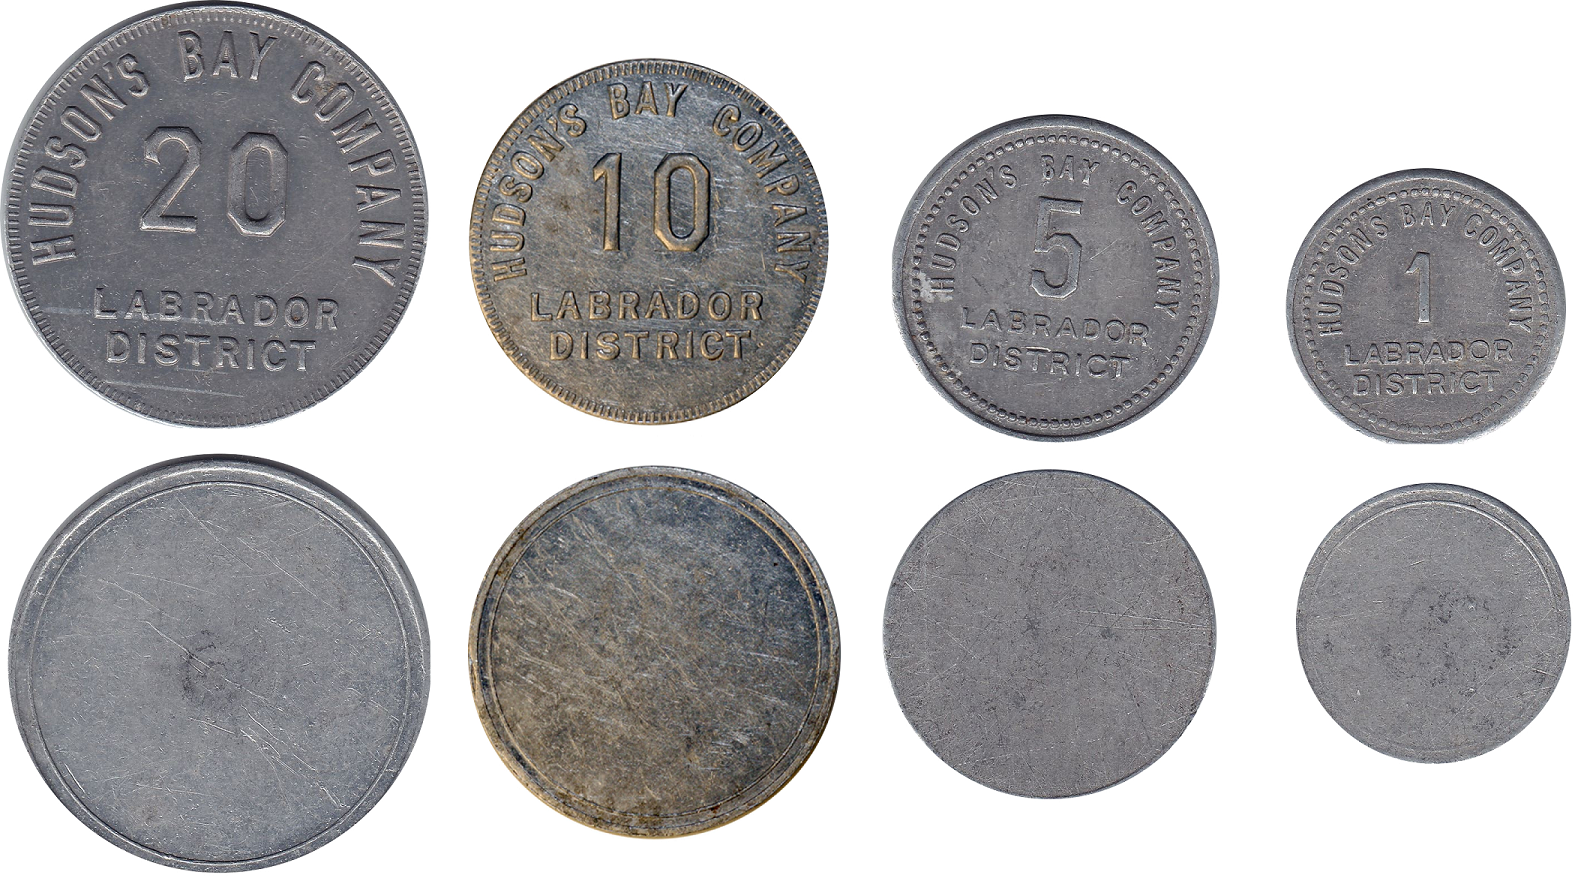 Labrador district Tokens